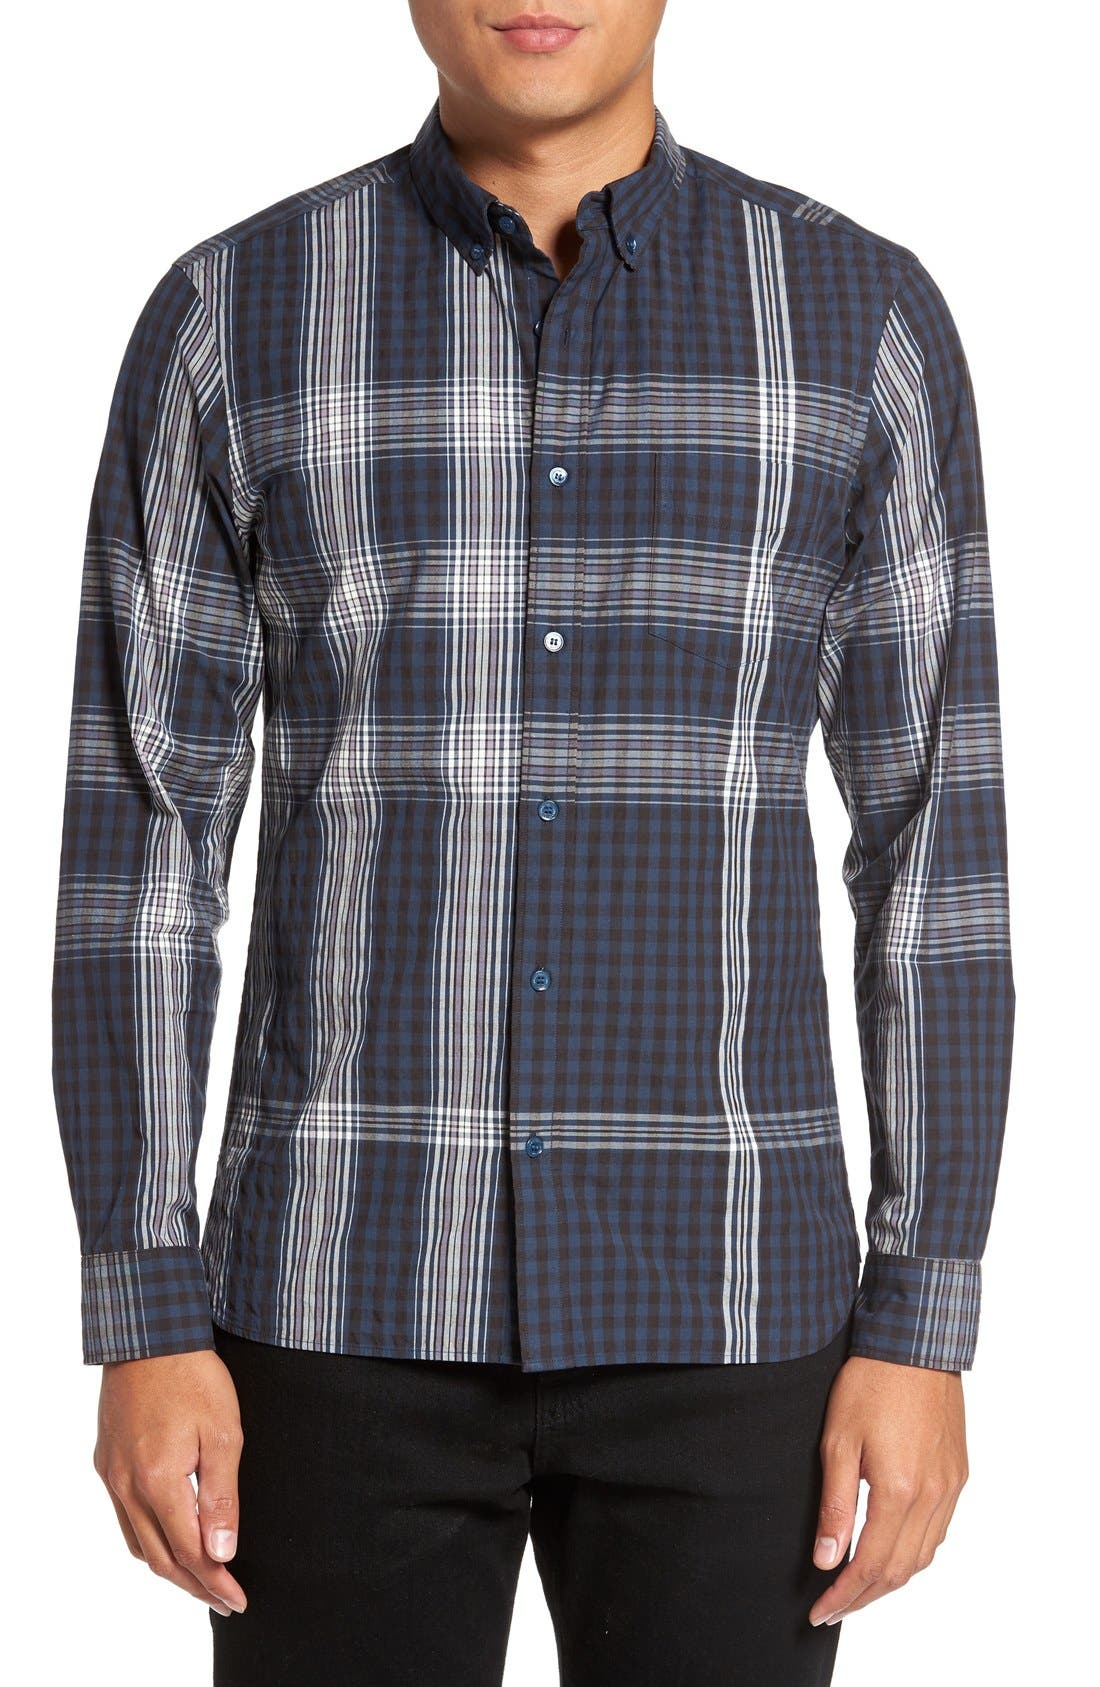 Burberry 'Blackrock' Trim Fit Plaid Sport Shirt